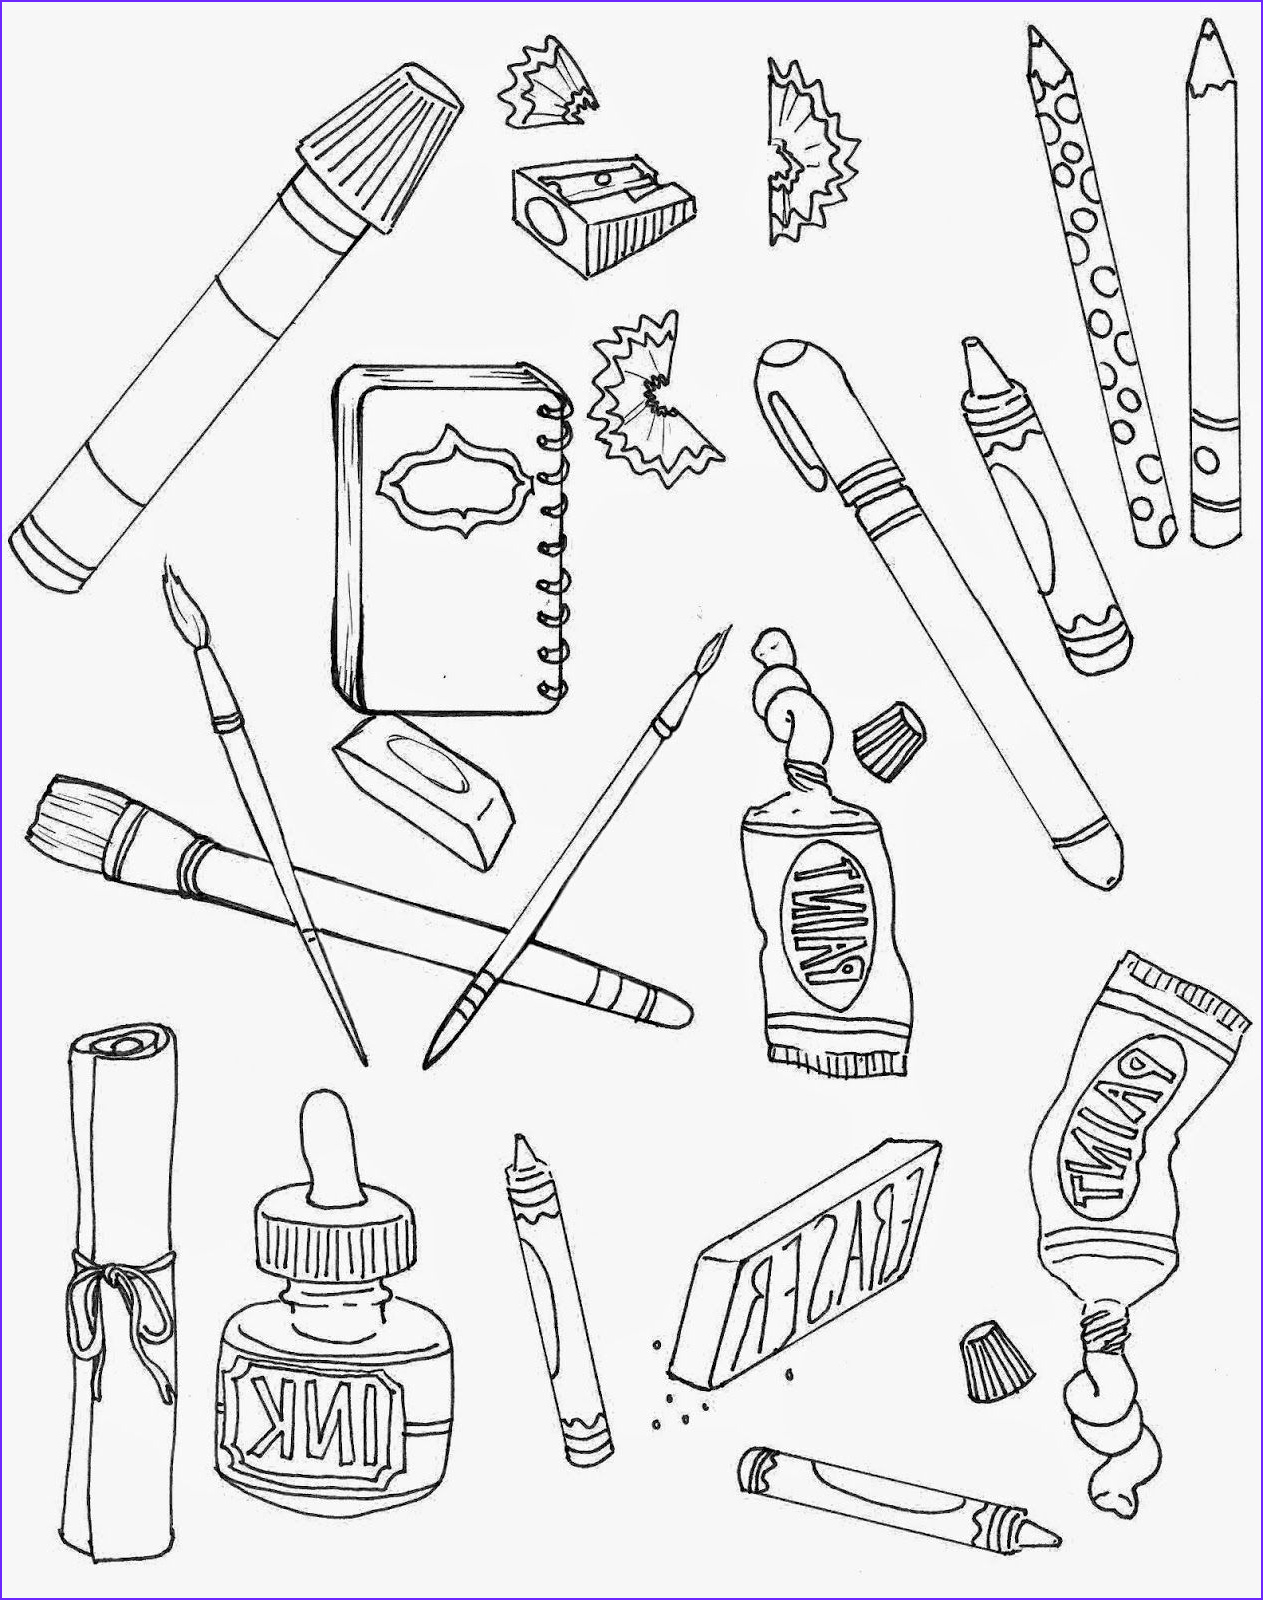 School Supplies Coloring Page Beautiful Photography Art Supplies Coloring Pages